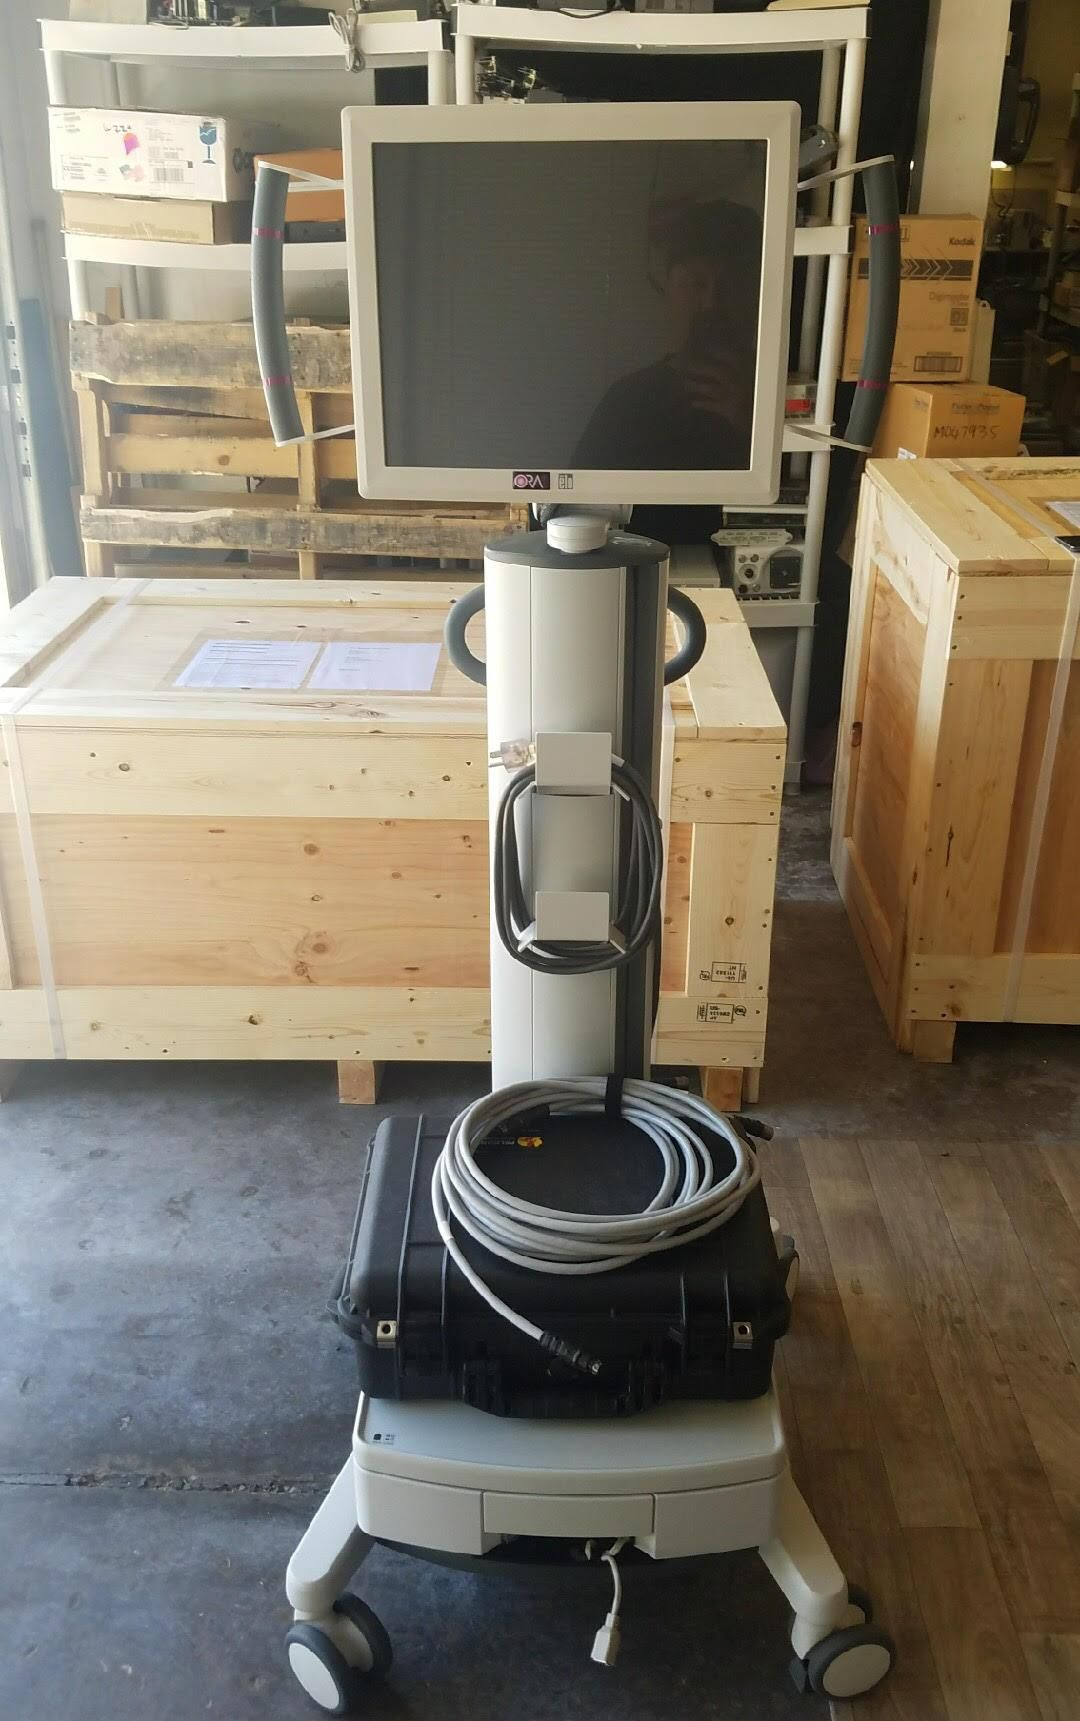 ORA System 2000 with VerifEye + Technologies, Manufacturer 03/23/17